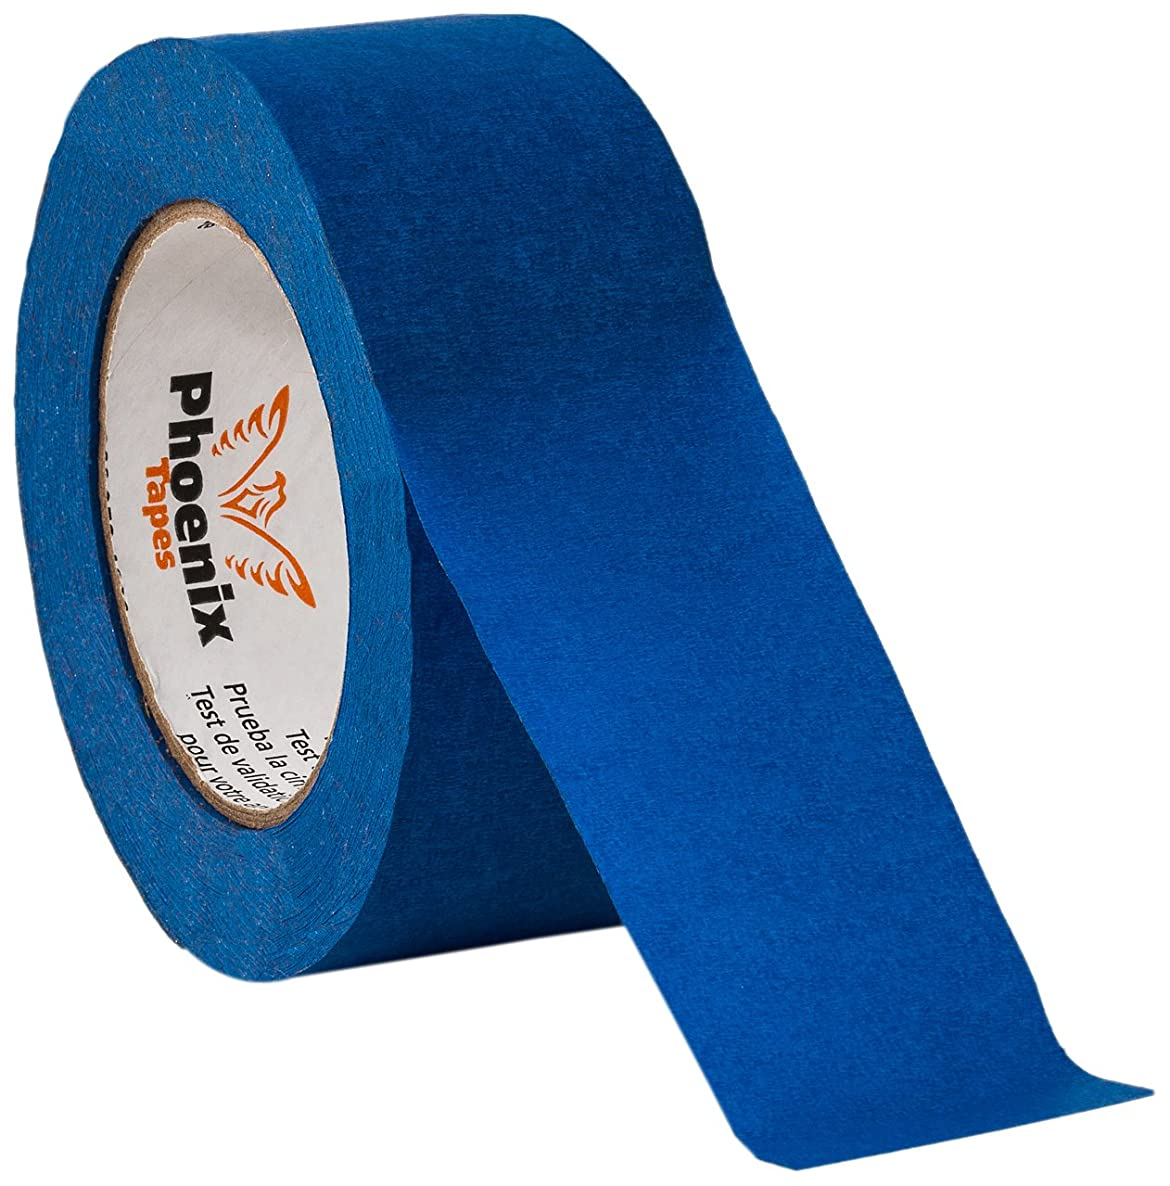 Phoenix Tapes 30494 Blue Tape, 2-Inch by 60-Yard